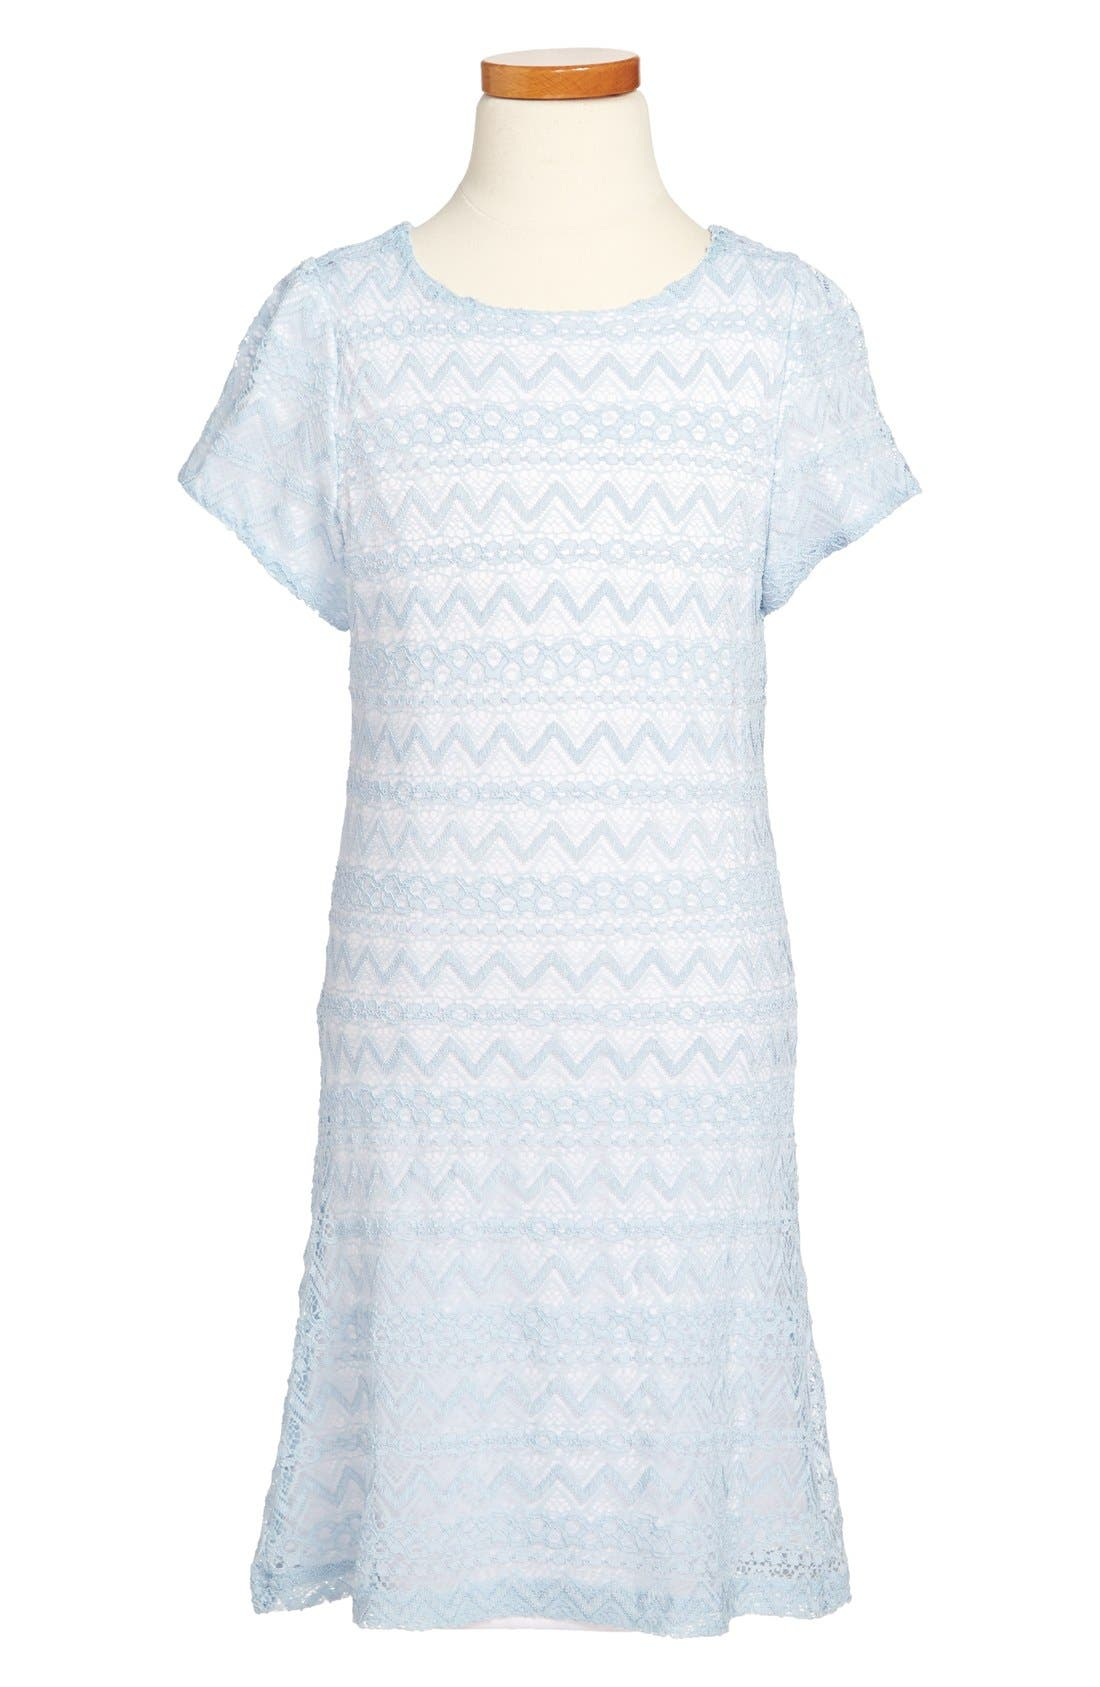 Alternate Image 1 Selected - Laundry by Shelli Segal 'Lacey' Dress (Big Girls)